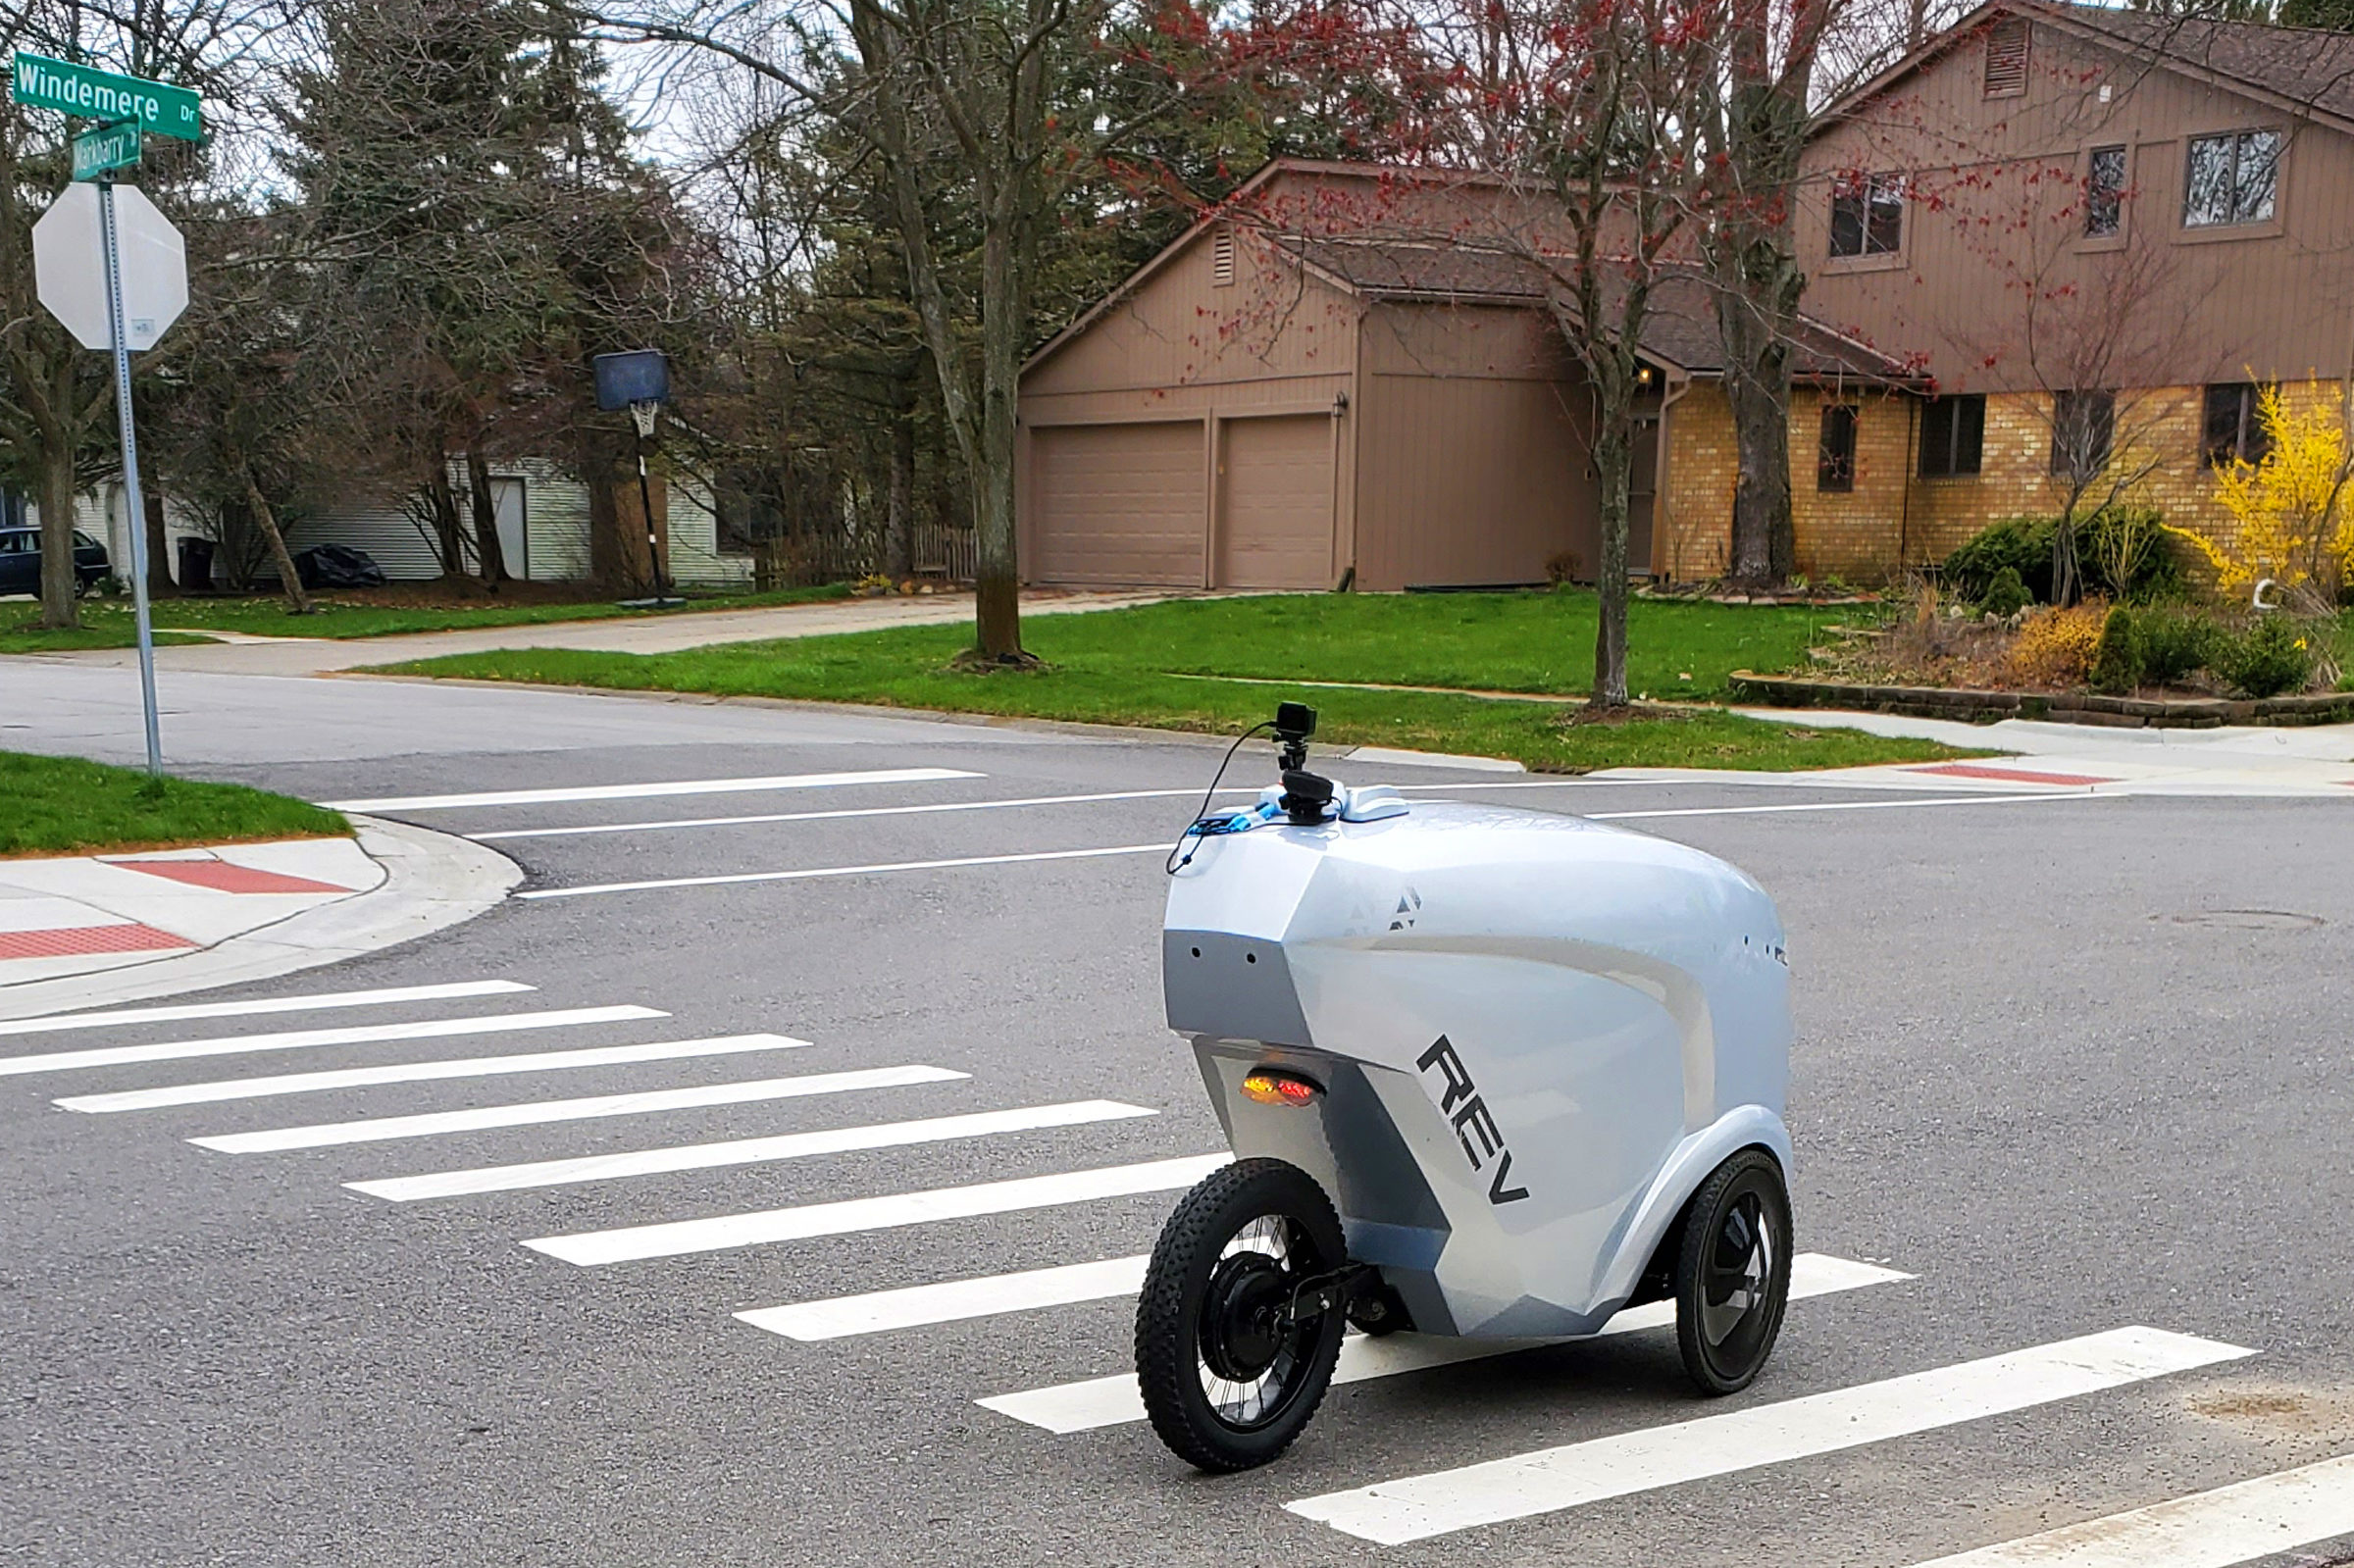 REV-1 delivery robot